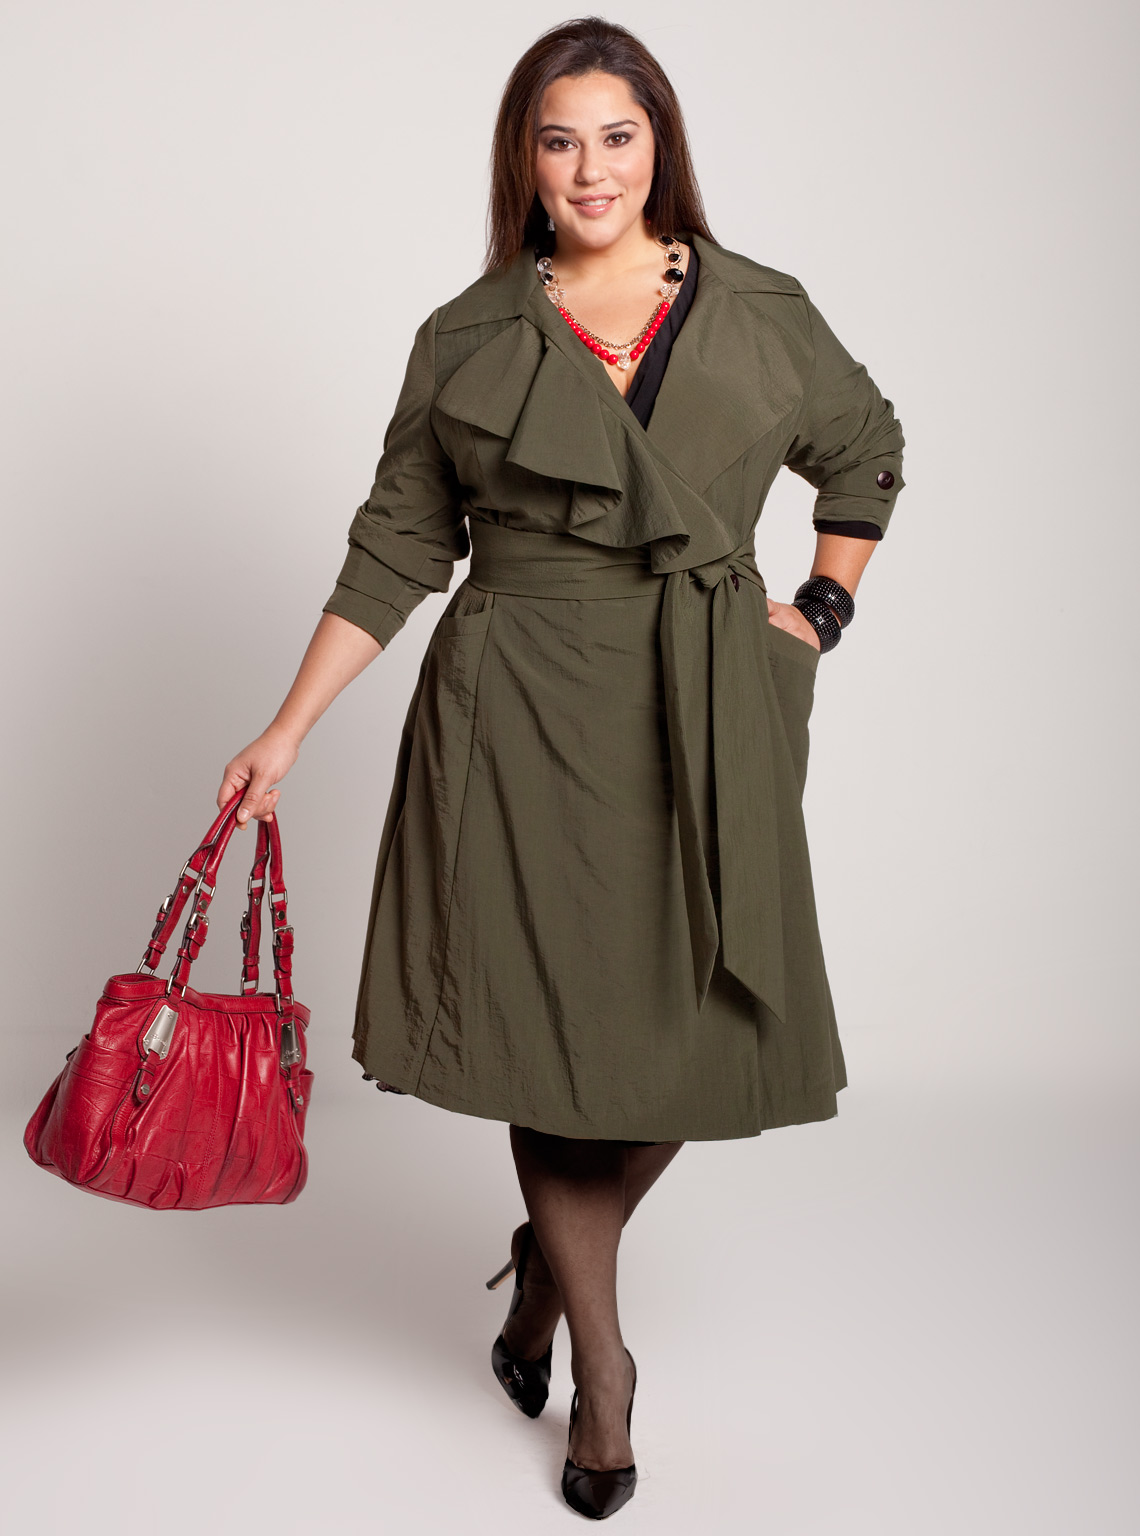 Dress for plus size with Jessica London, the best website for plus size clothes and fashion that love your curves, our women's clothing in plus sizes and all the hottest dresses.